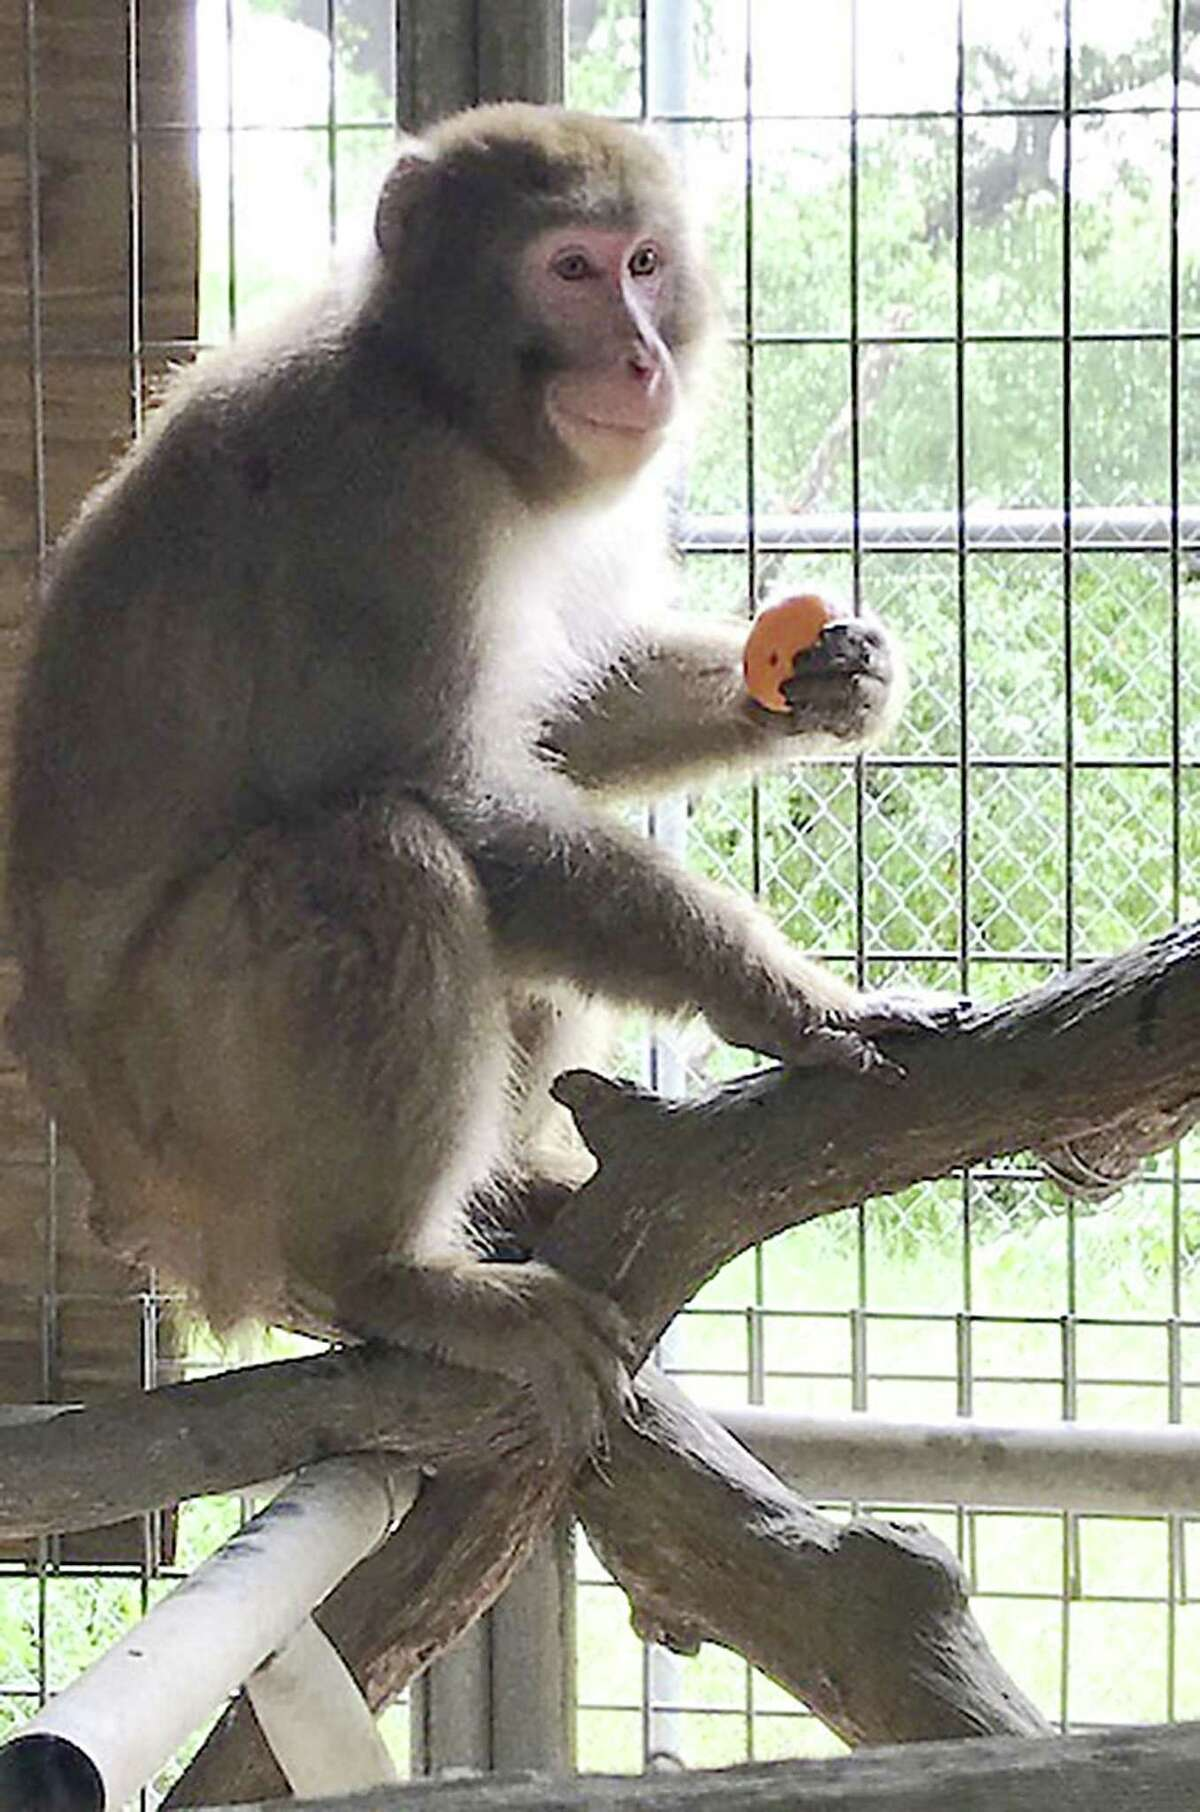 This snow macque rests safely at the Wildlife Rescue & Rehabilitation sanctuary in Kendalia in May 2018. The monkey had been kept in a Rio Grande Valley home but faced euthanasia after a child was bitten. He was saved after a storm of social media protest